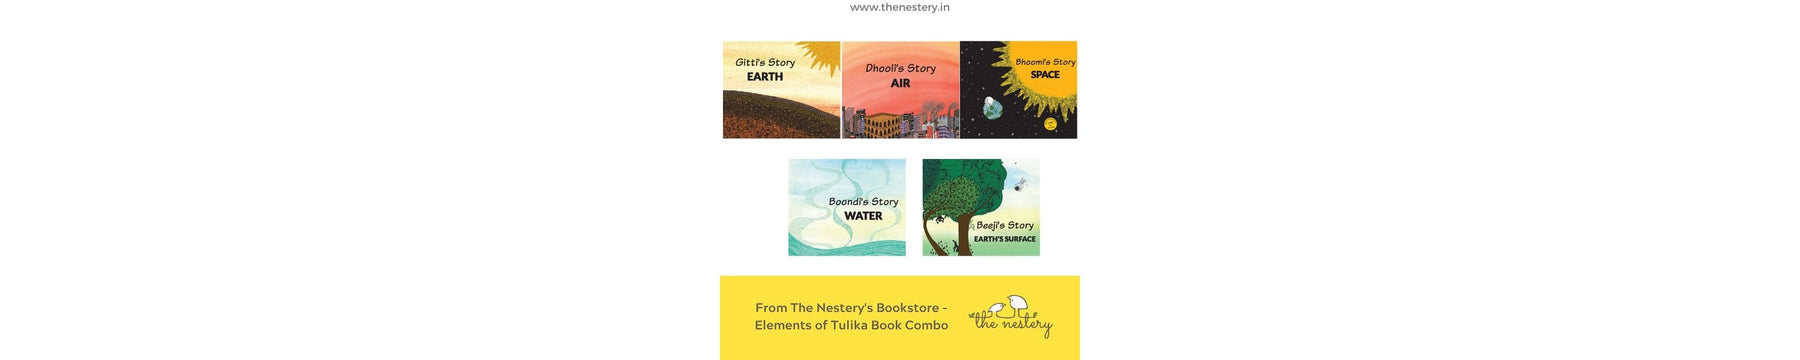 Book Review - Elements of Tulika Book Combo